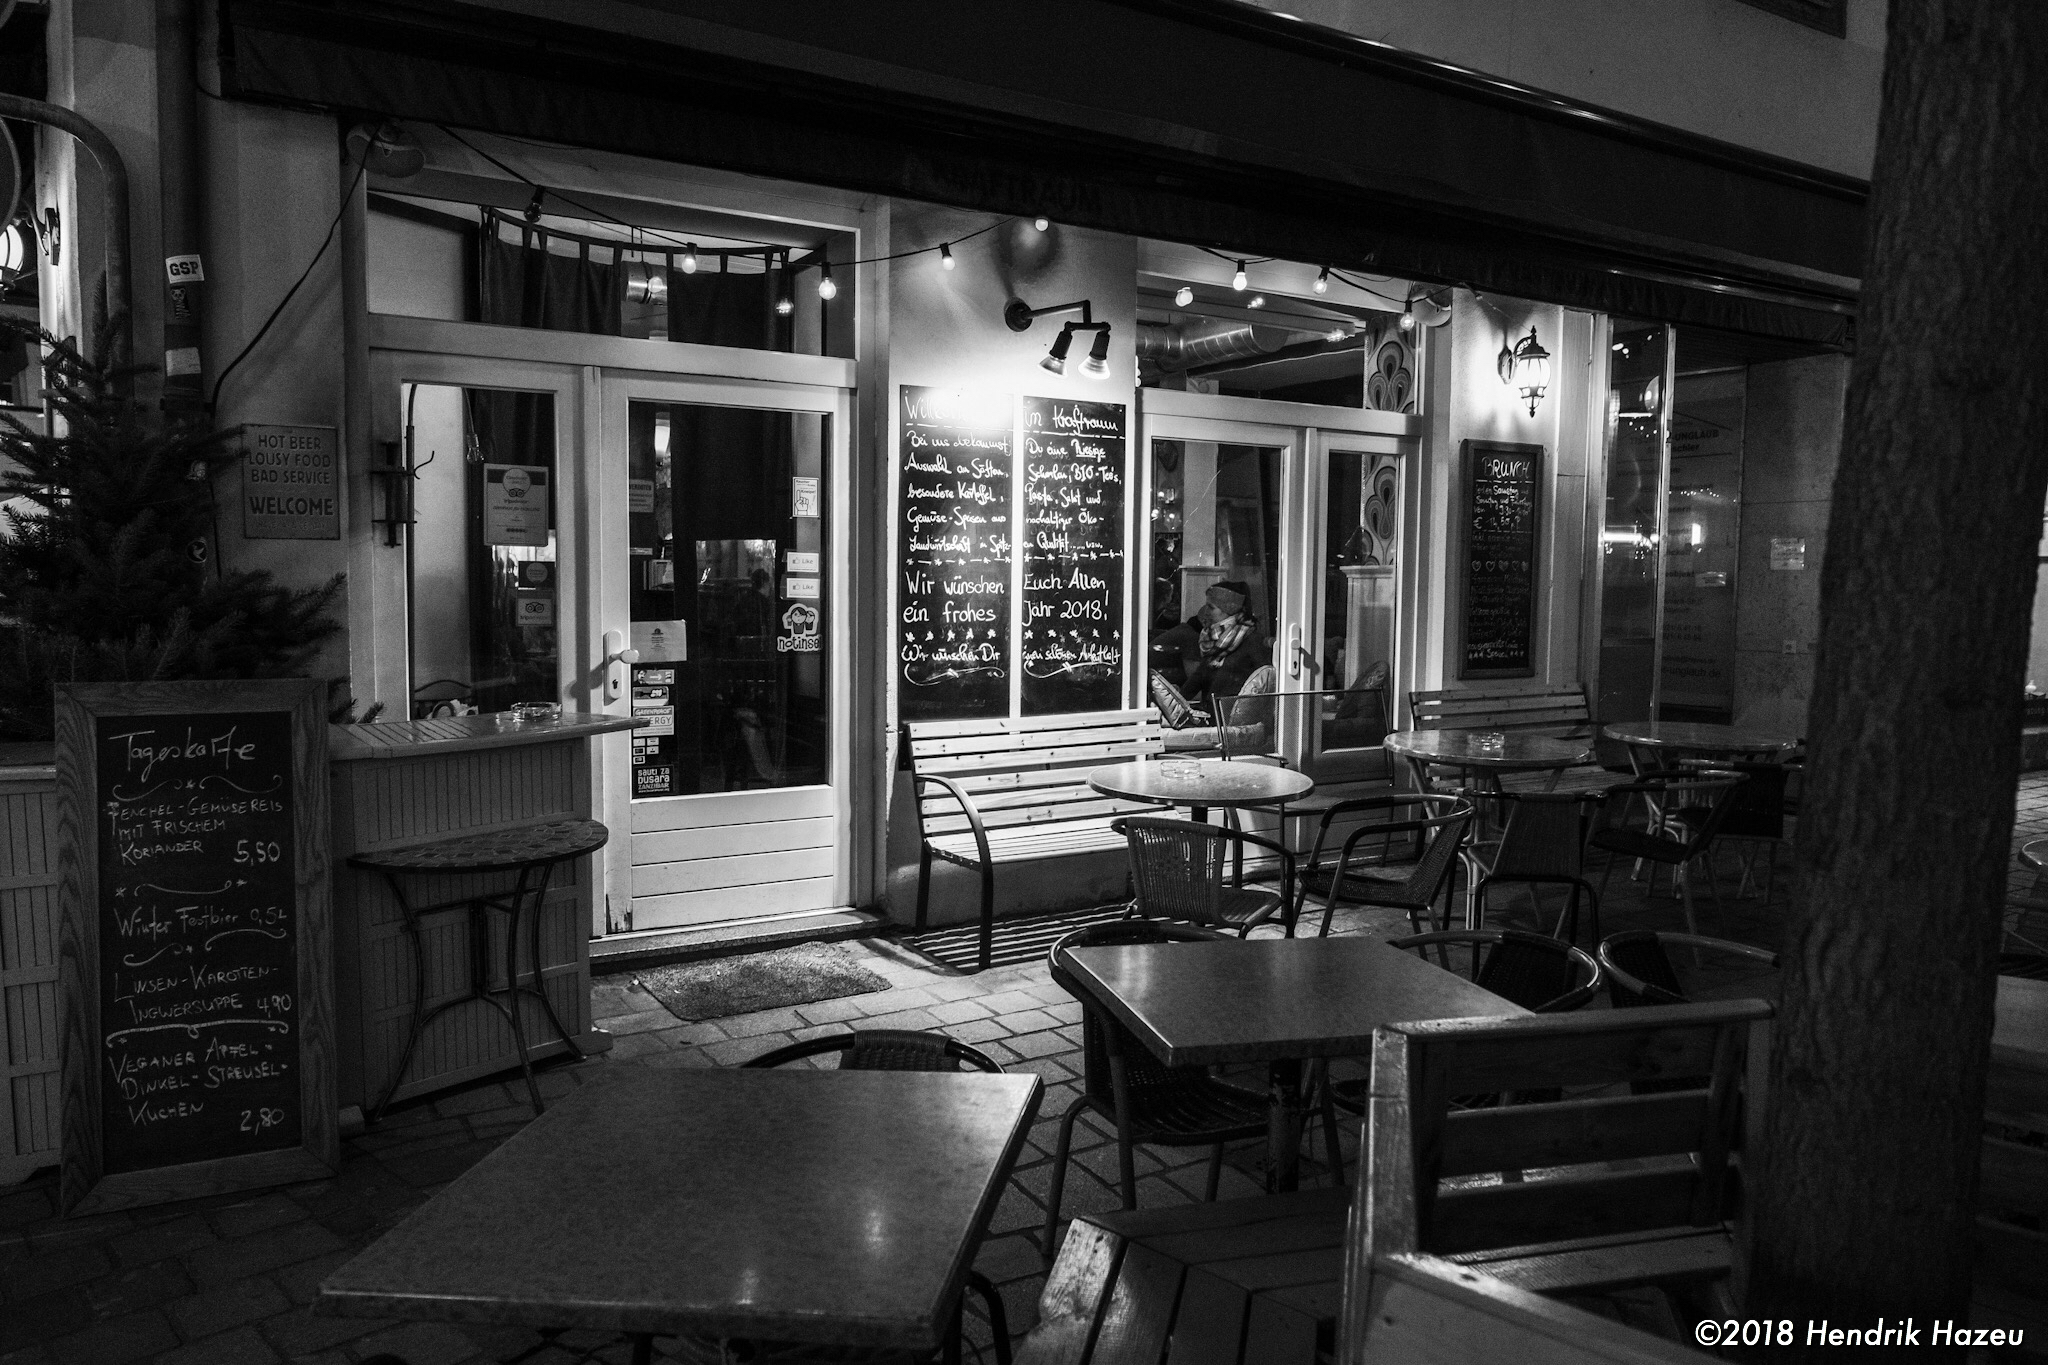 Too cold to sit outside. Night time bar scene, XF 16-55mm at 16mm, @f/2.8, 1/20sec, ISO1250